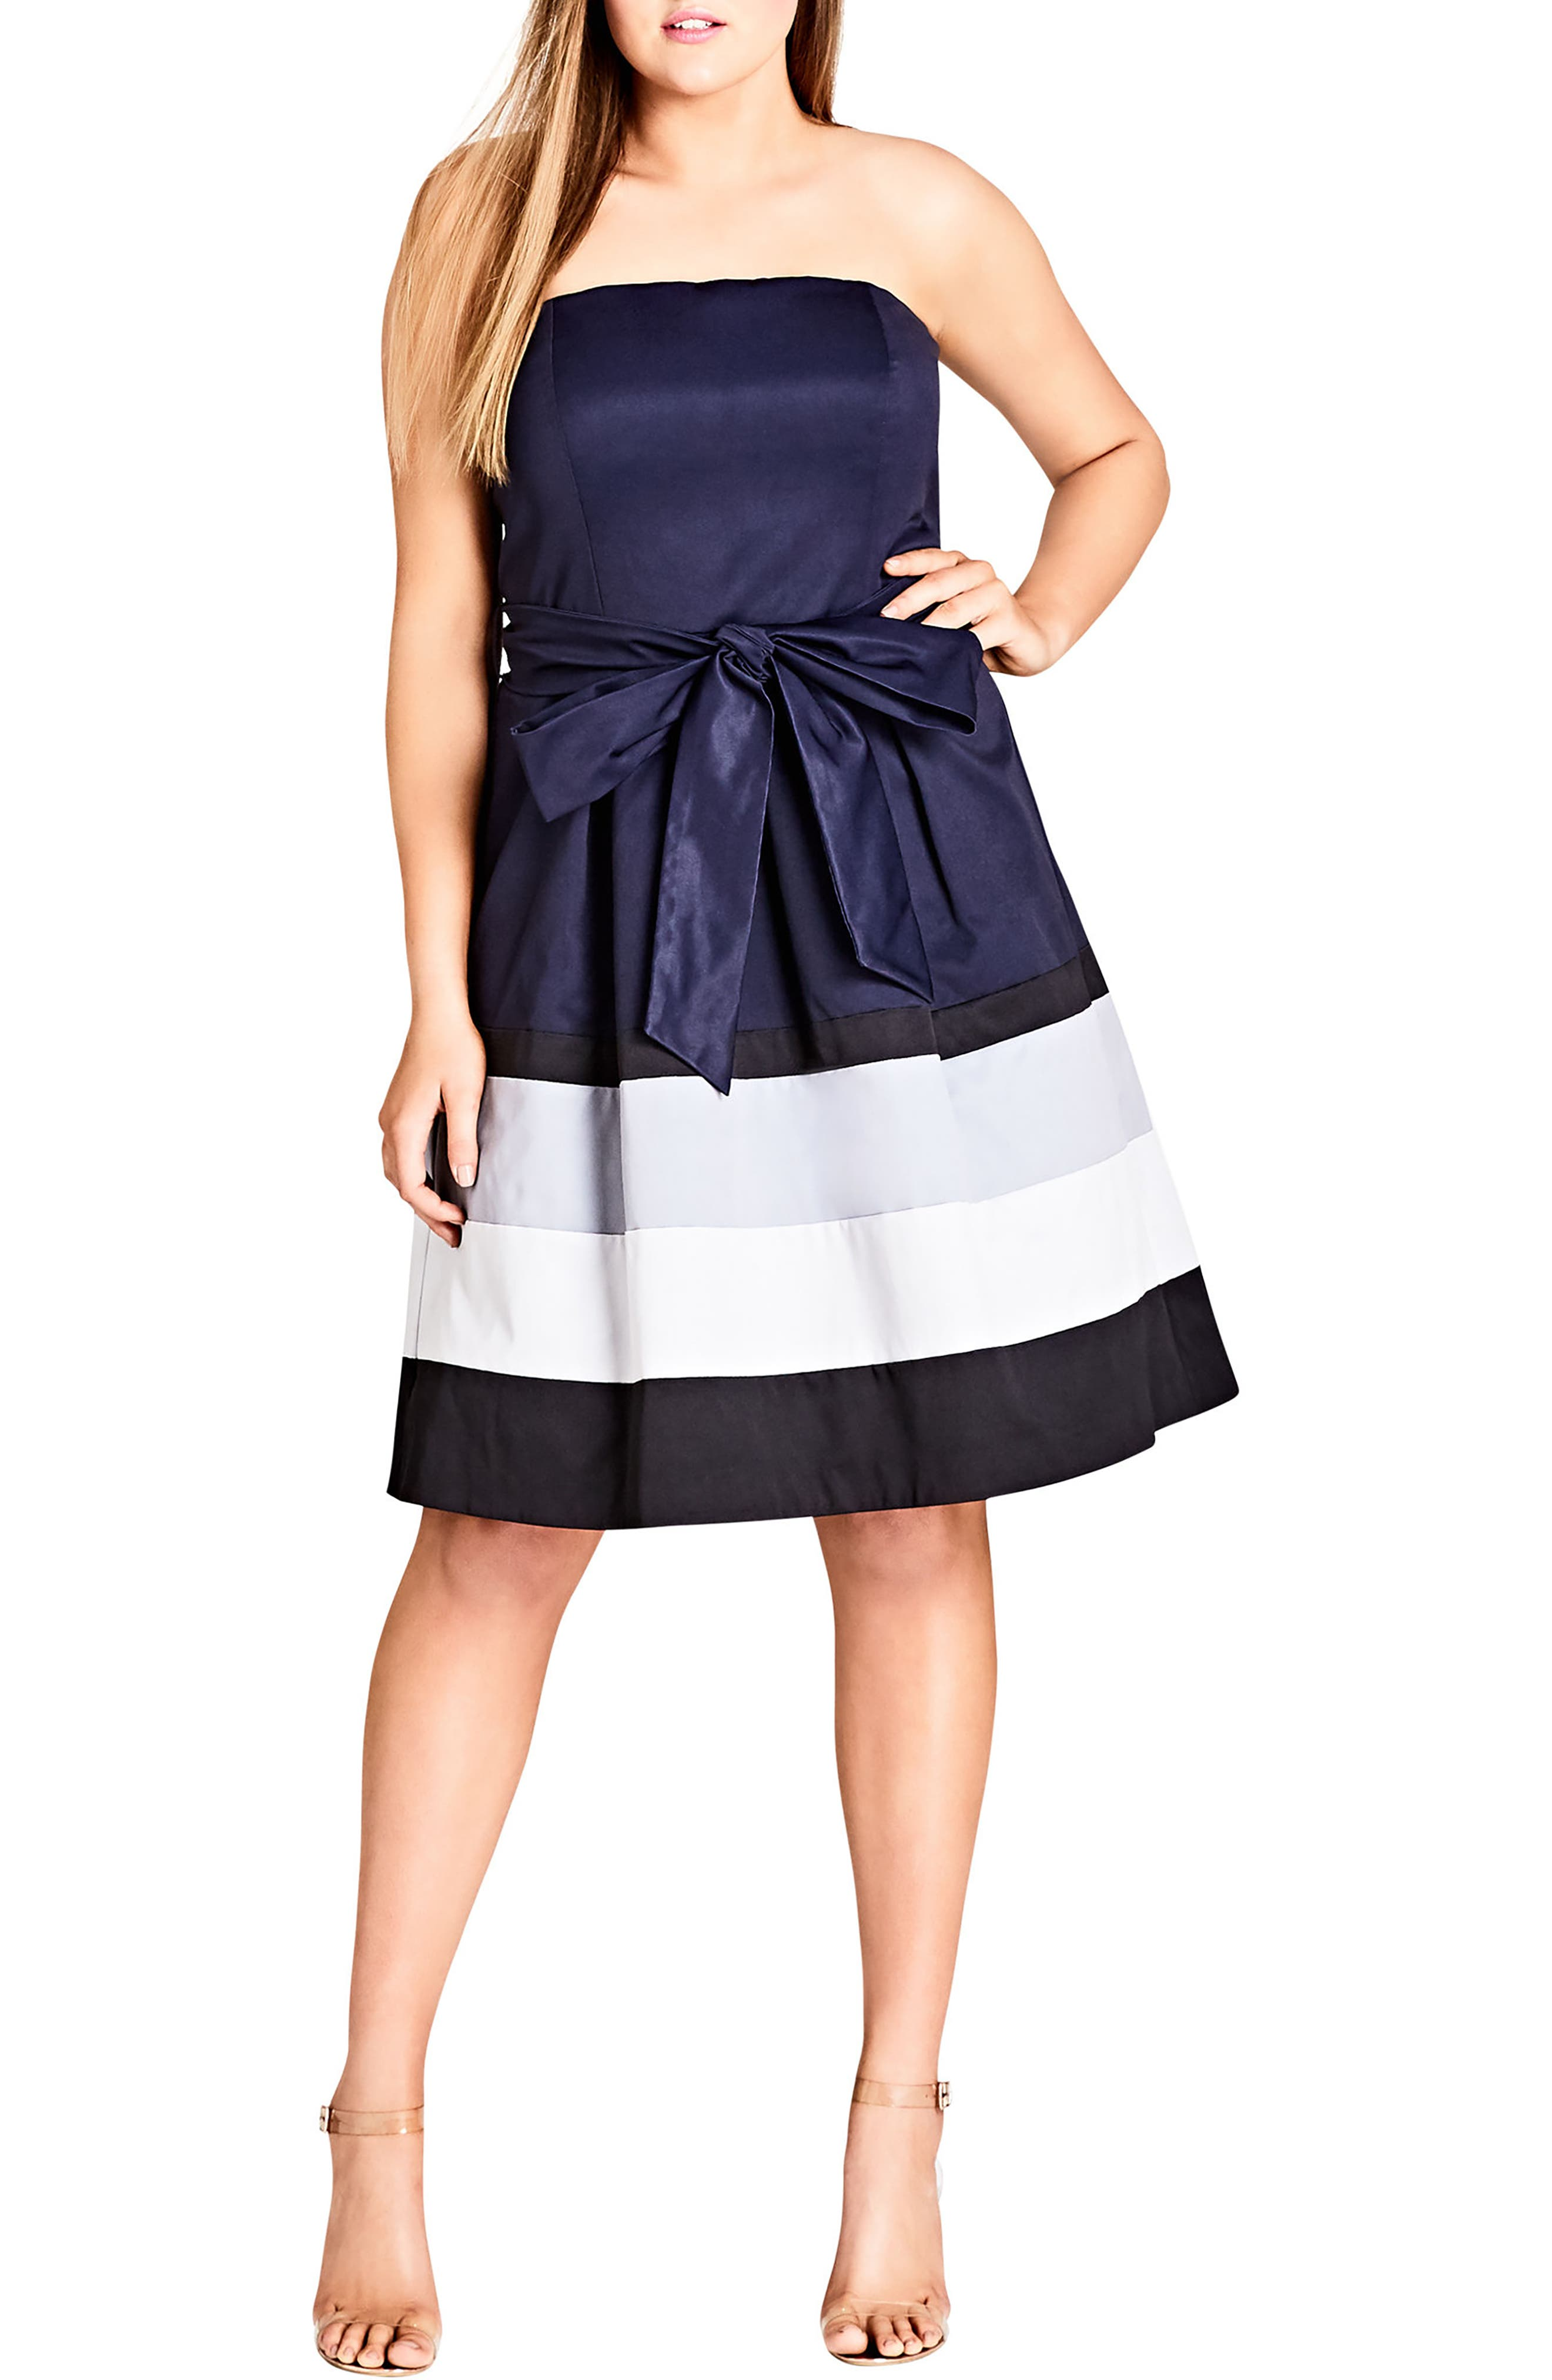 Alternate Image 1 Selected - City Chic Block Stripe Sleeveless Fit & Flare Dress